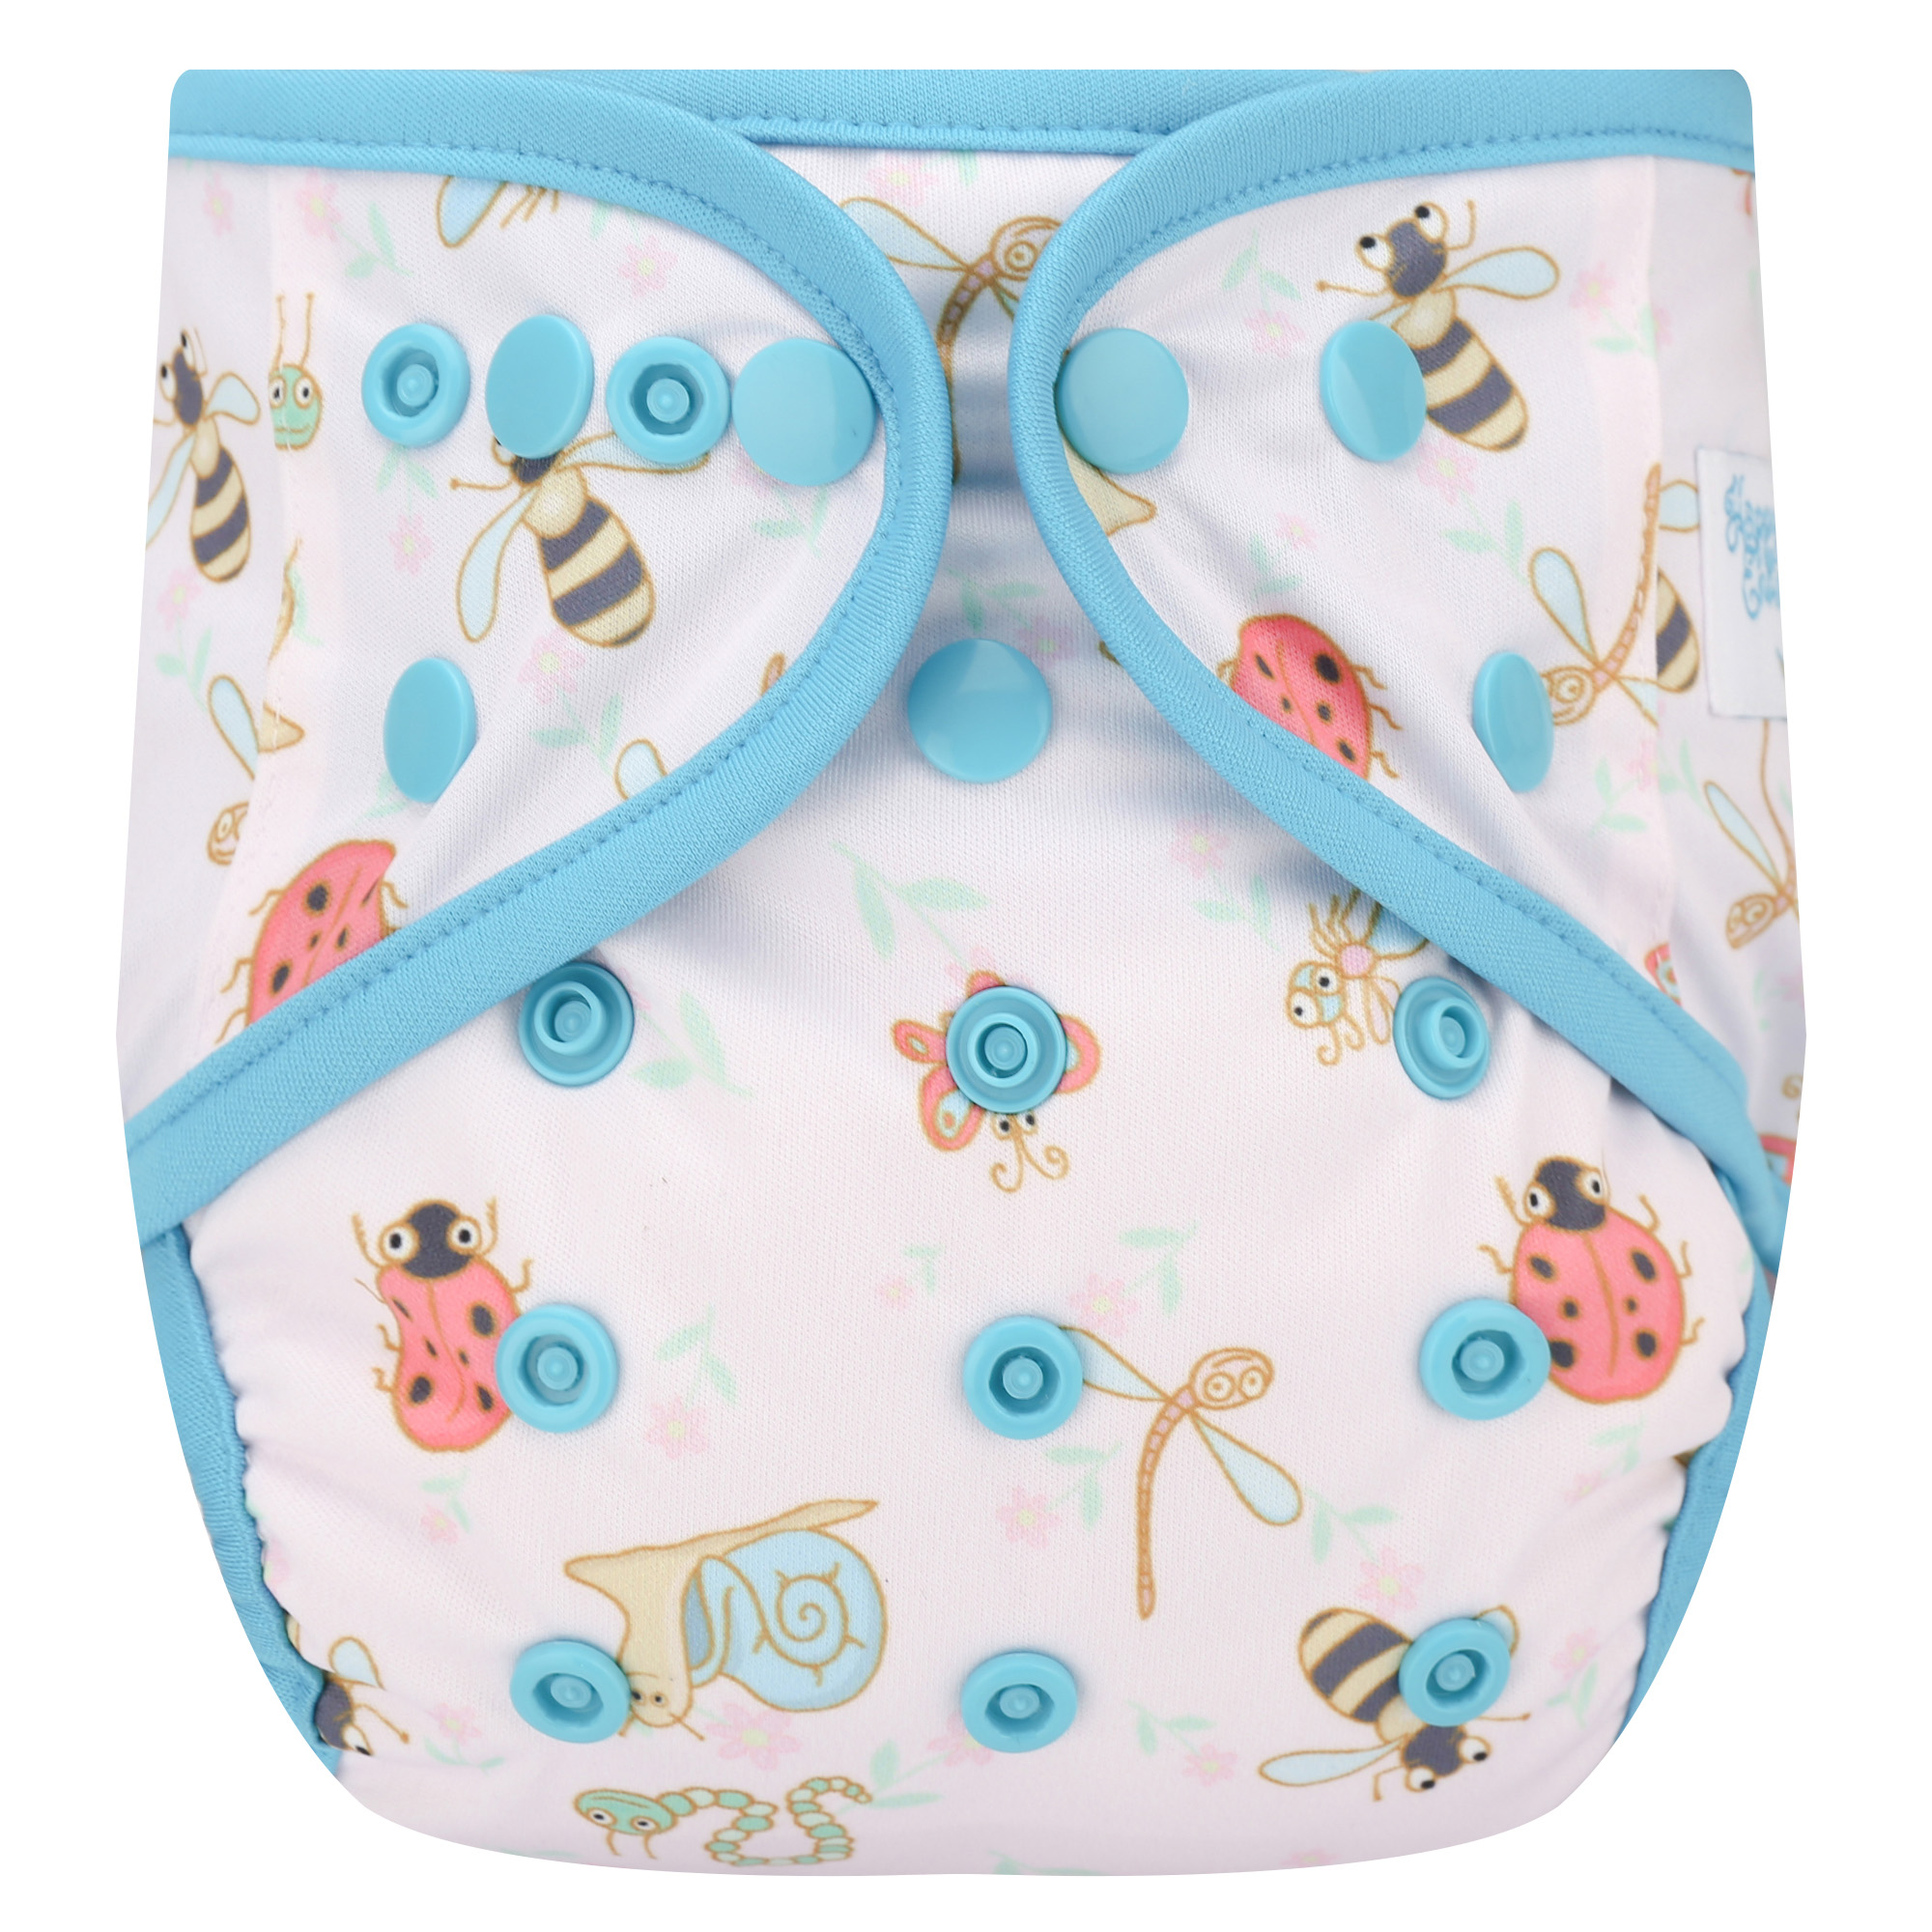 "HappyEndings One Size Cloth Diaper Cover AI2 System ""Bugs"""